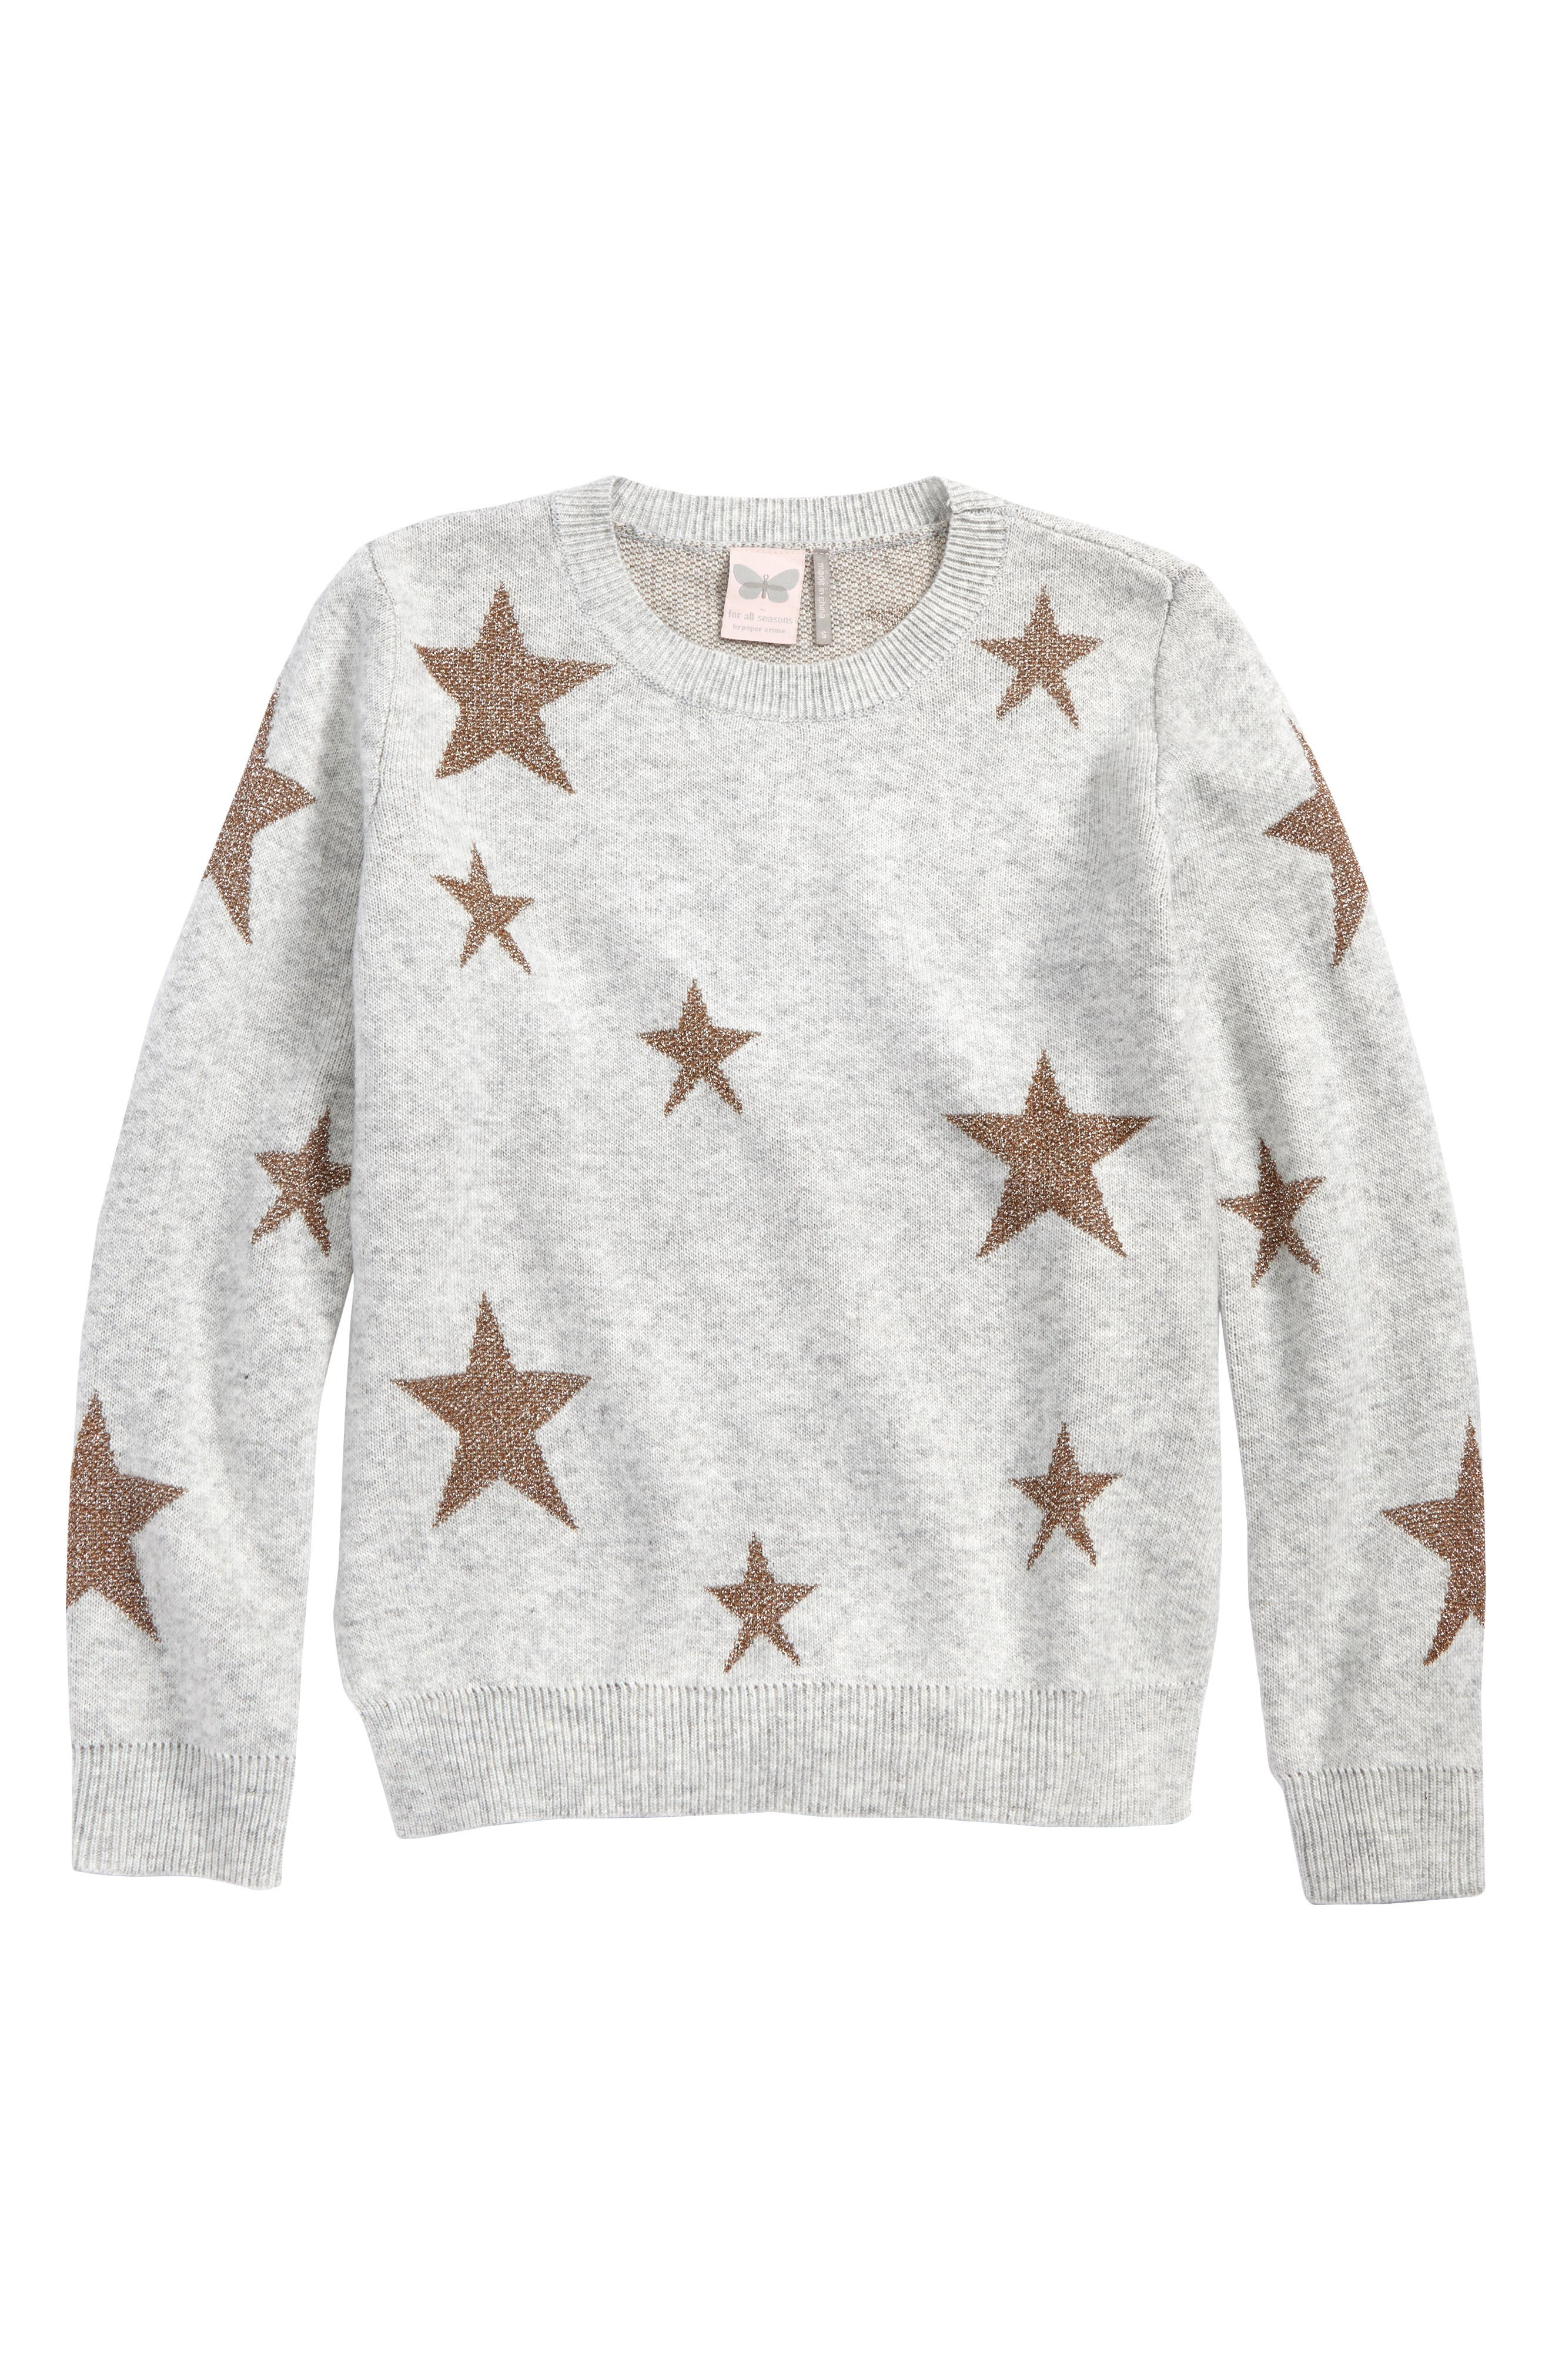 Star Sweater,                         Main,                         color, 020